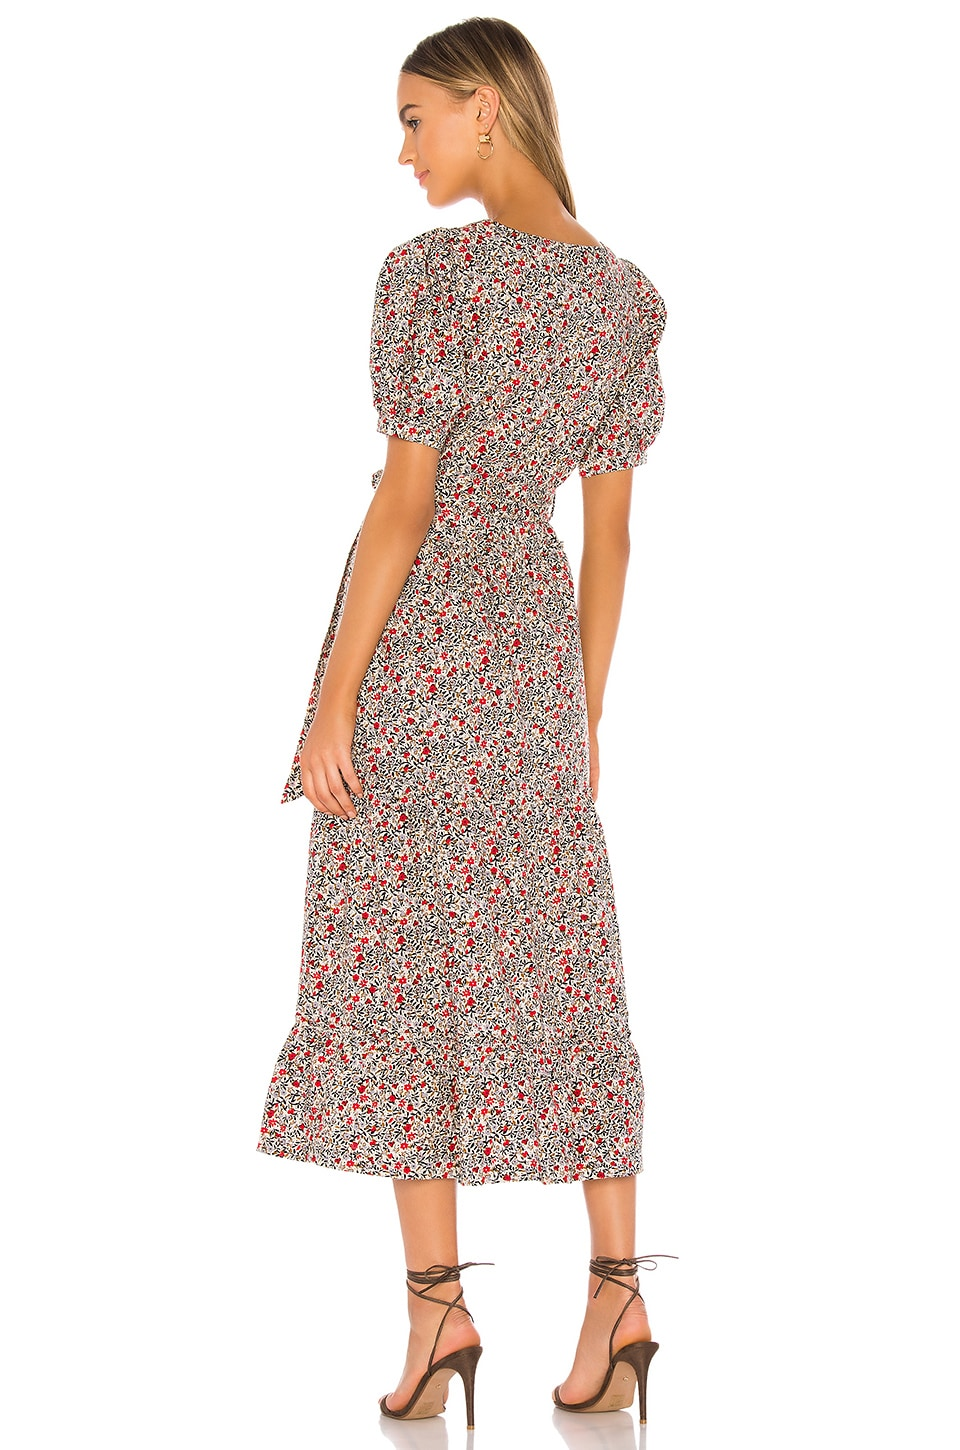 Heartlands Maxi Dress, view 3, click to view large image.